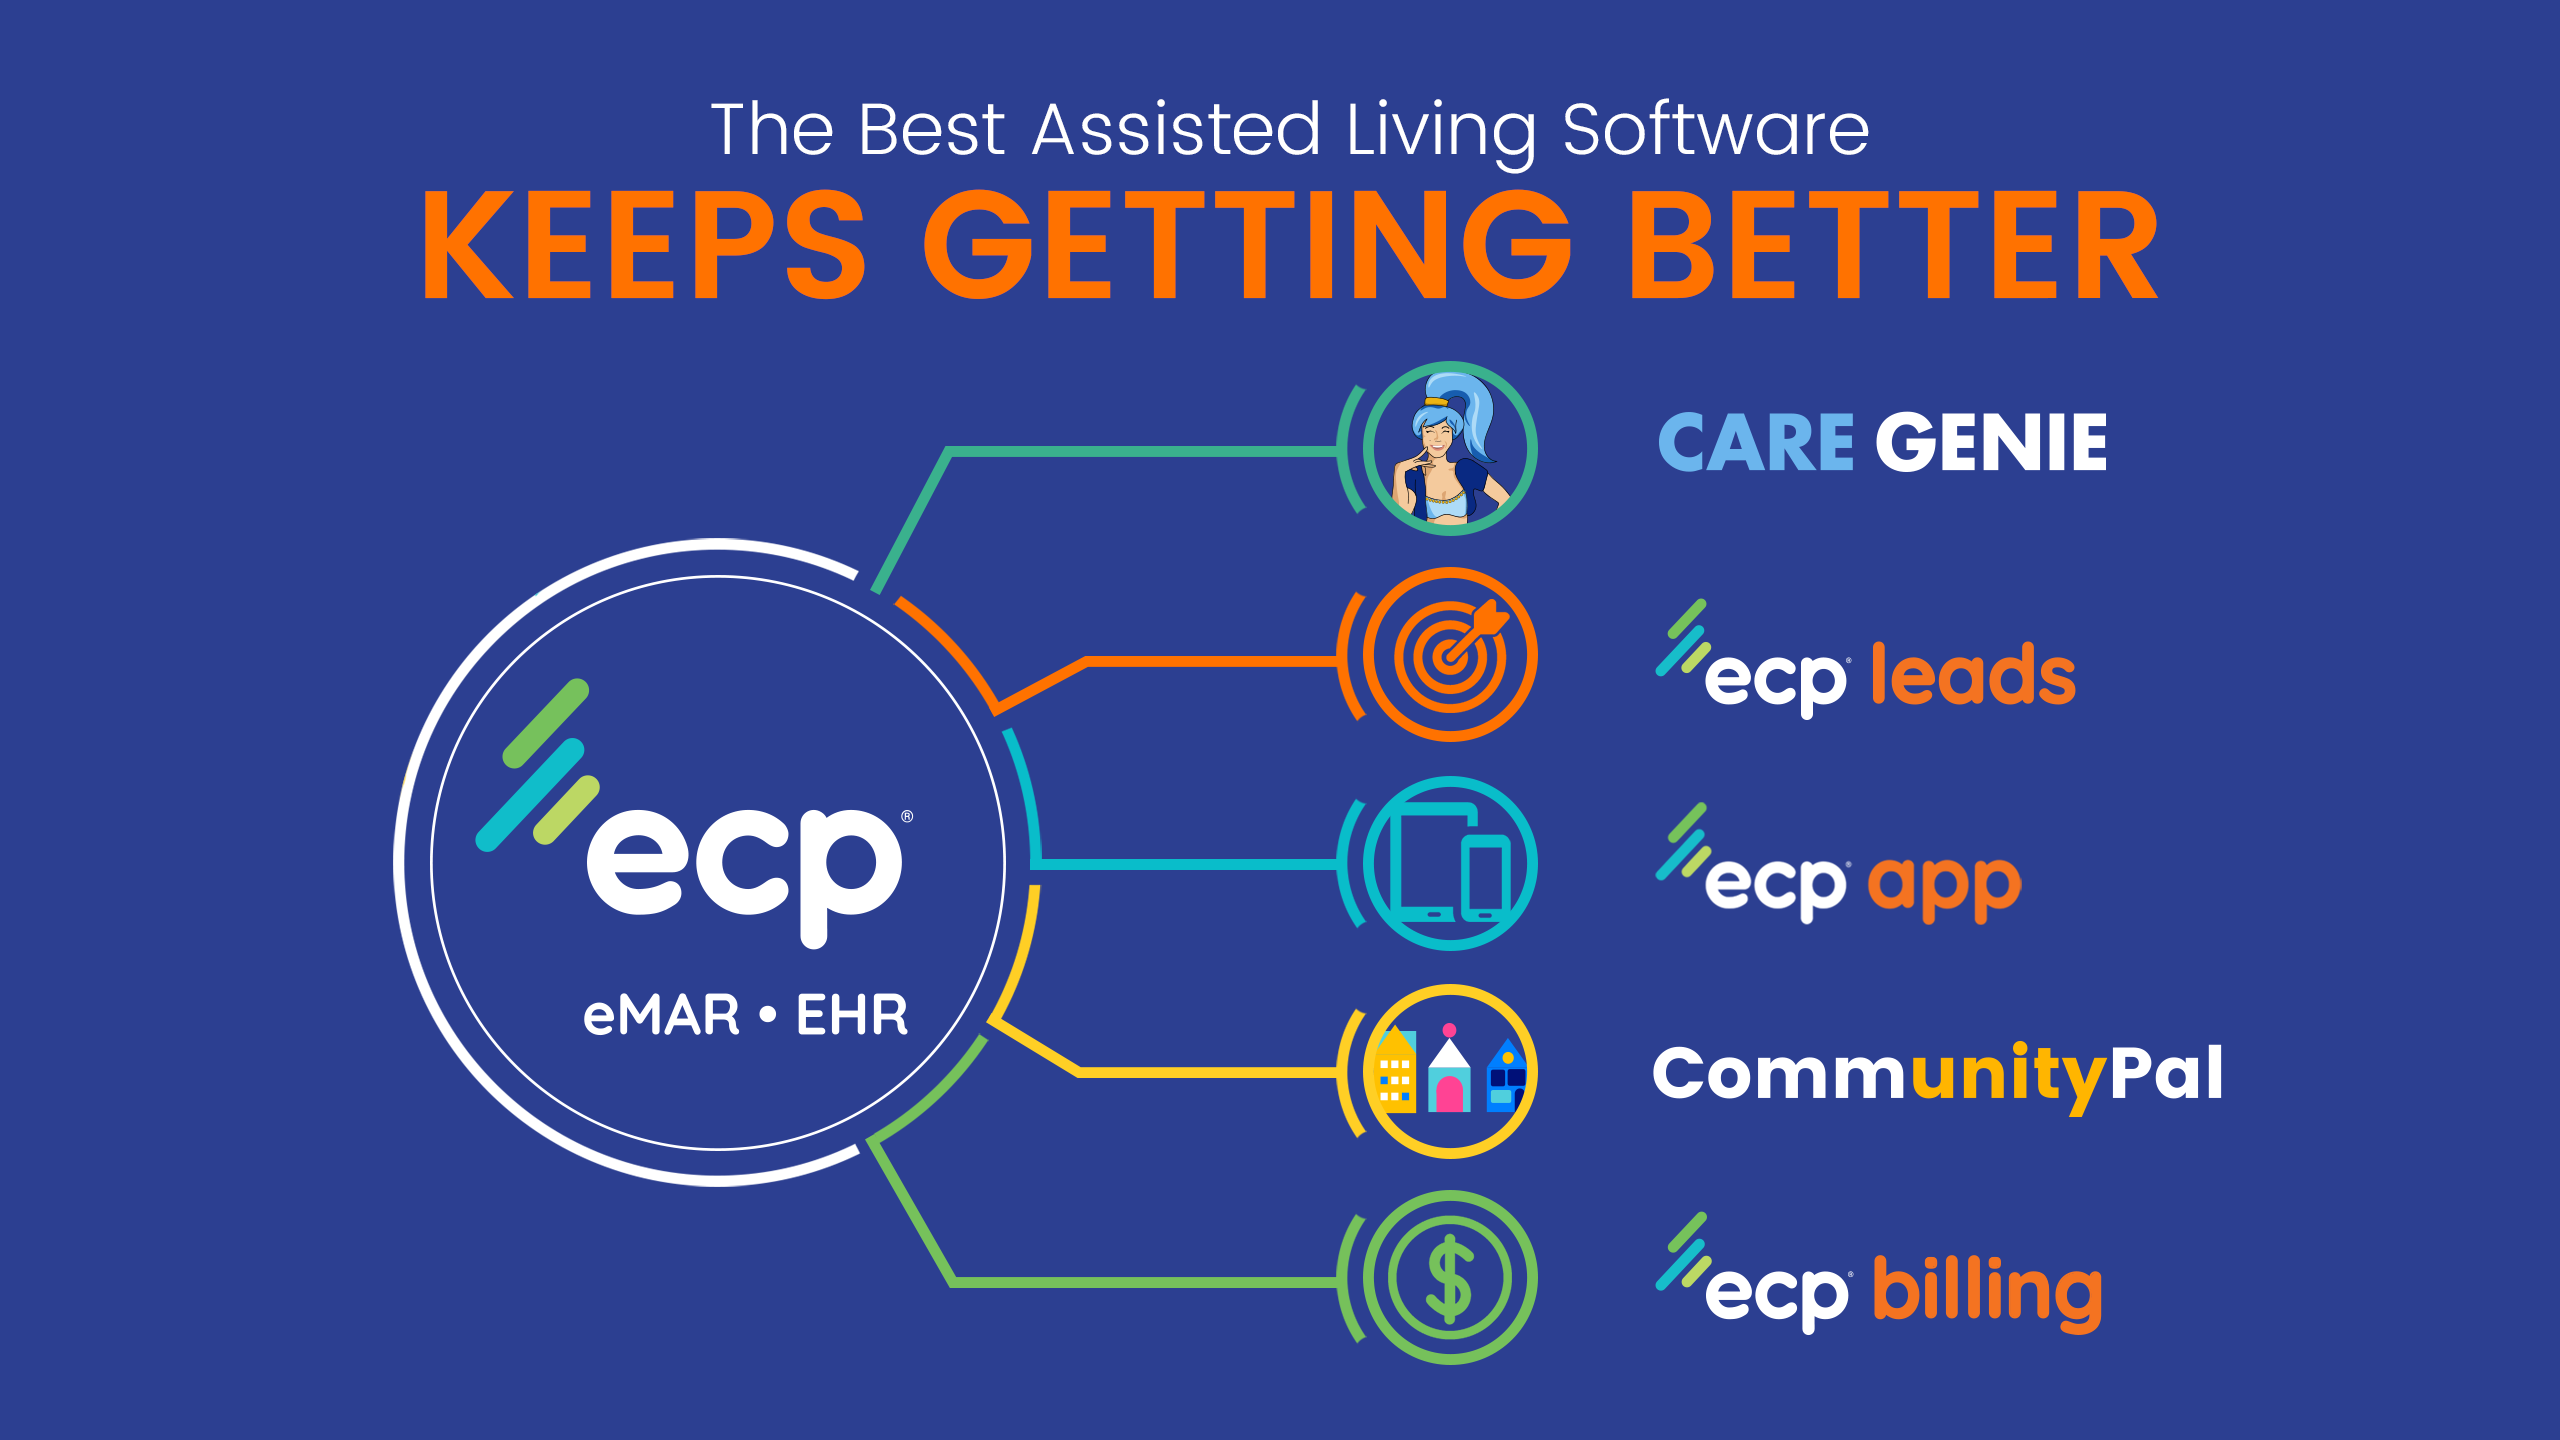 The Best Assisted Living Software Keeps Getting Better